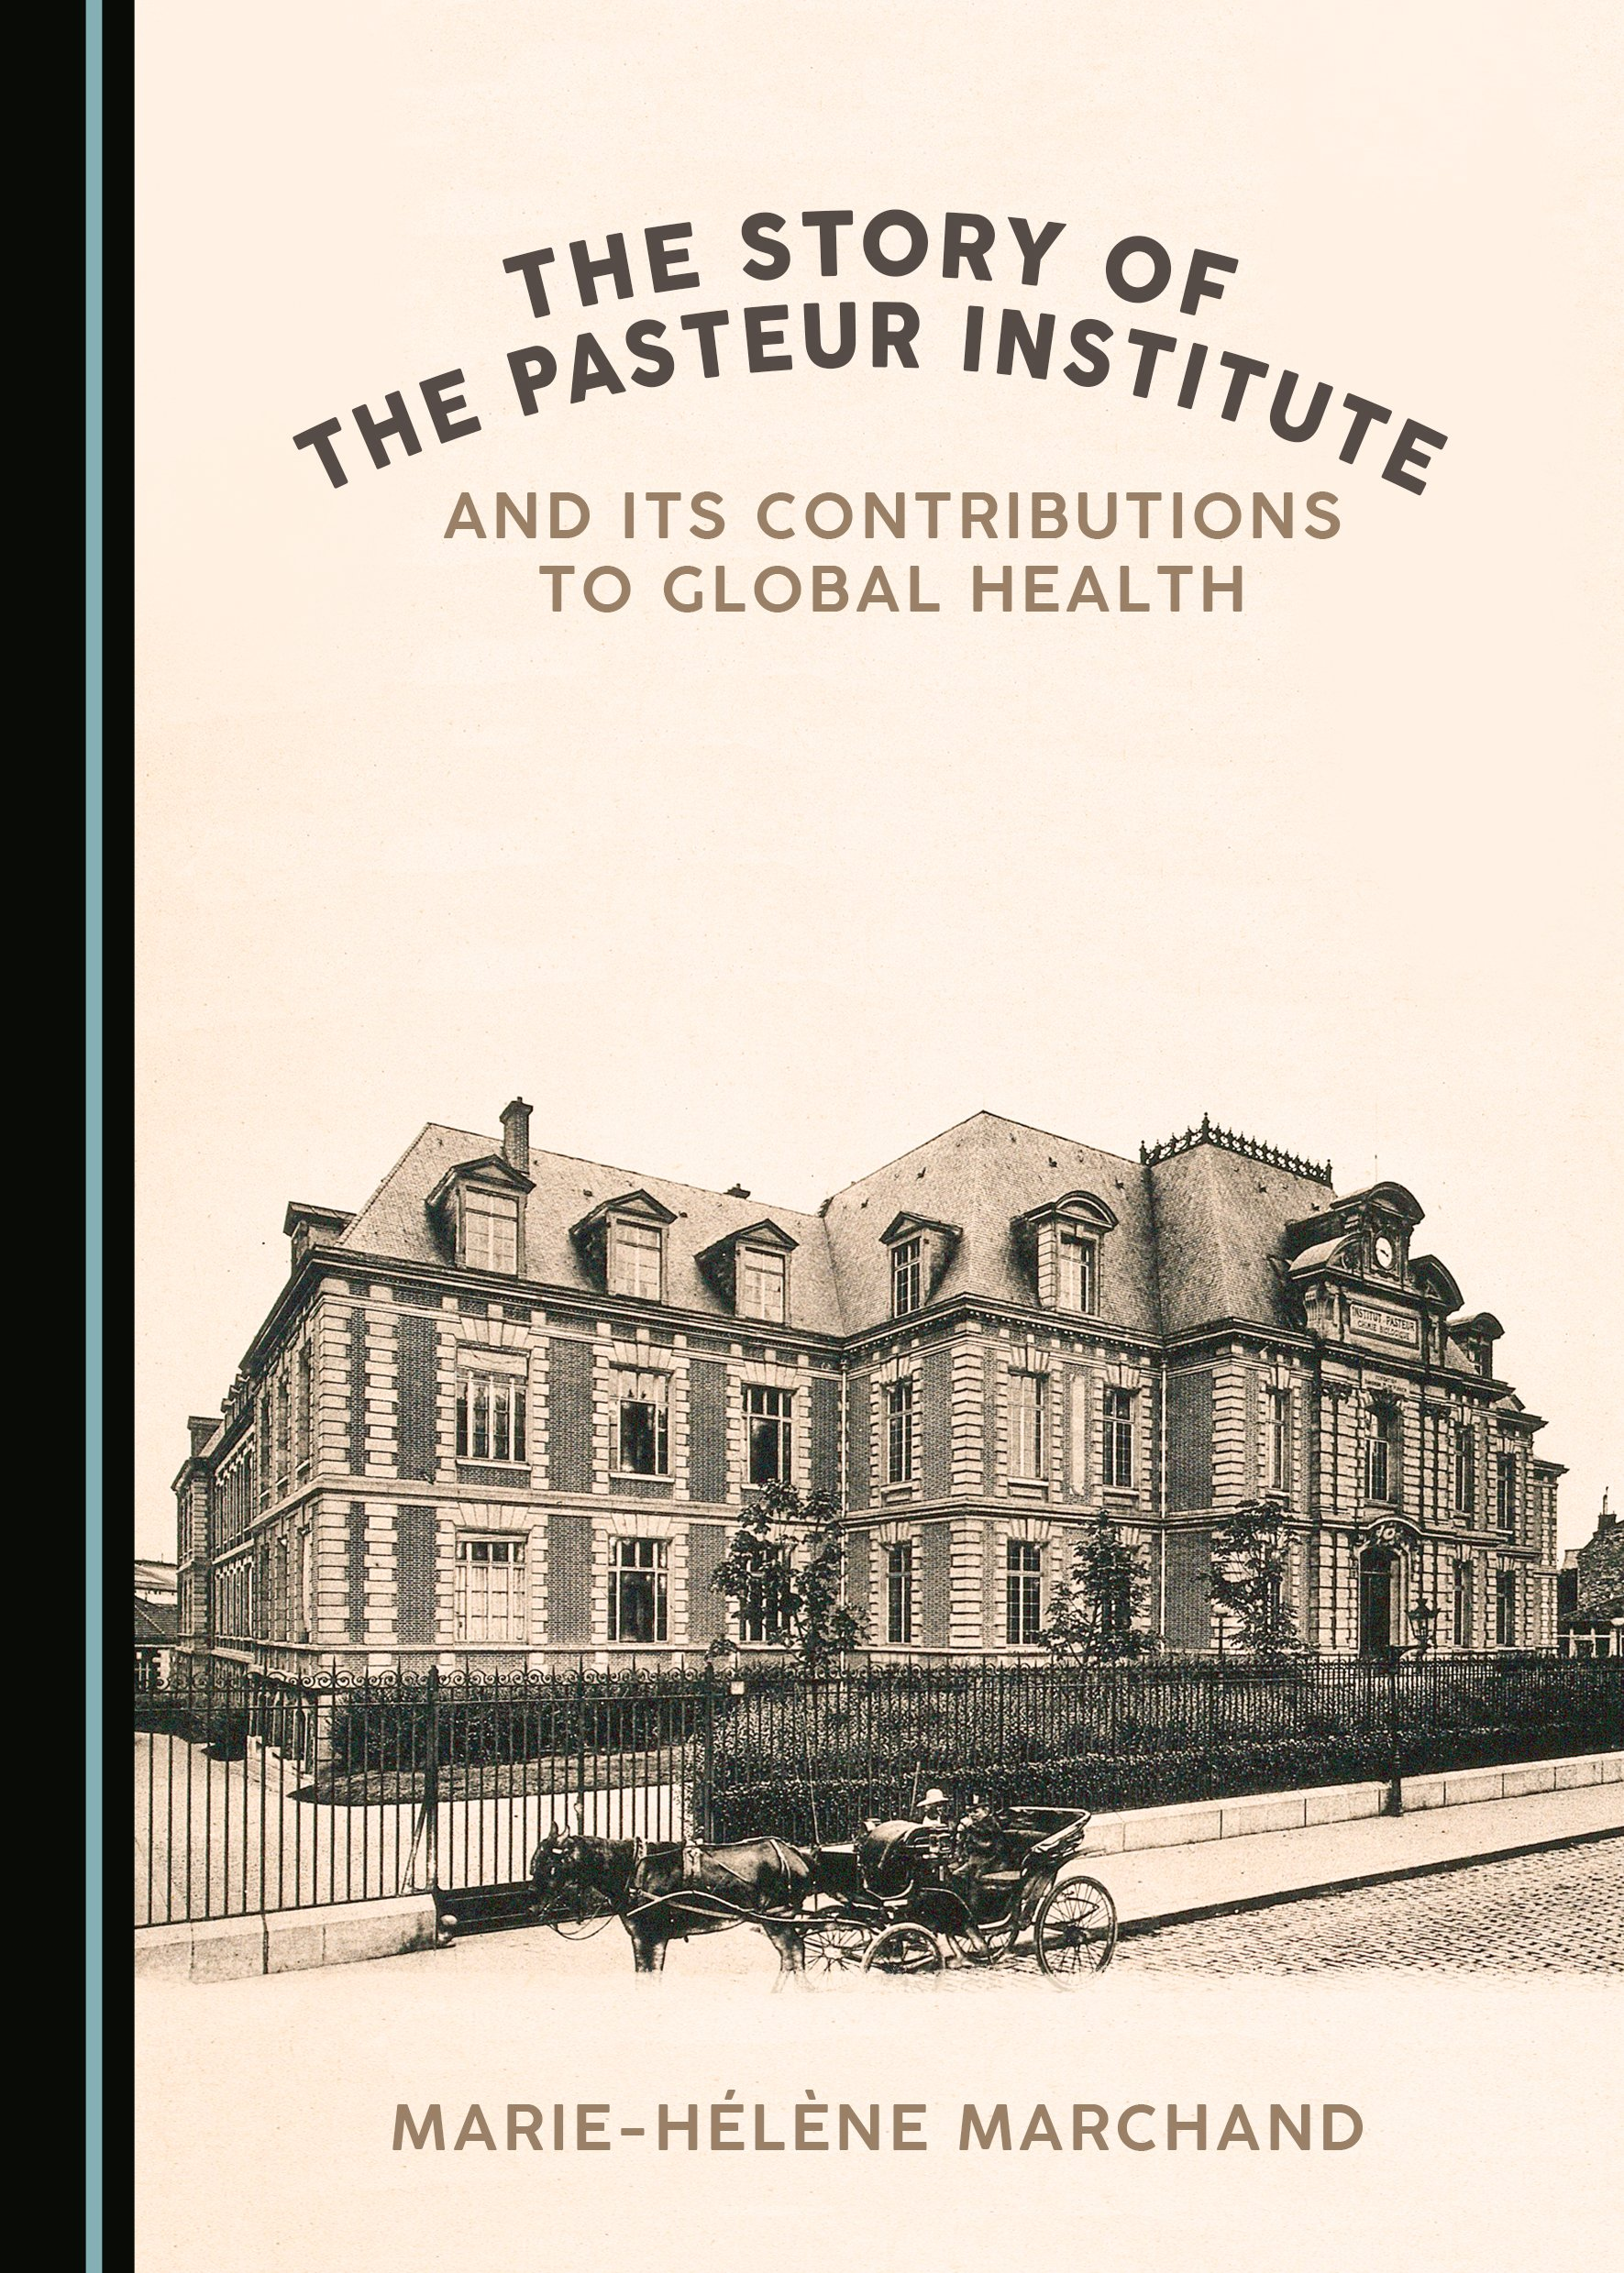 The Story of the Pasteur Institute and Its Contributions to Global Health